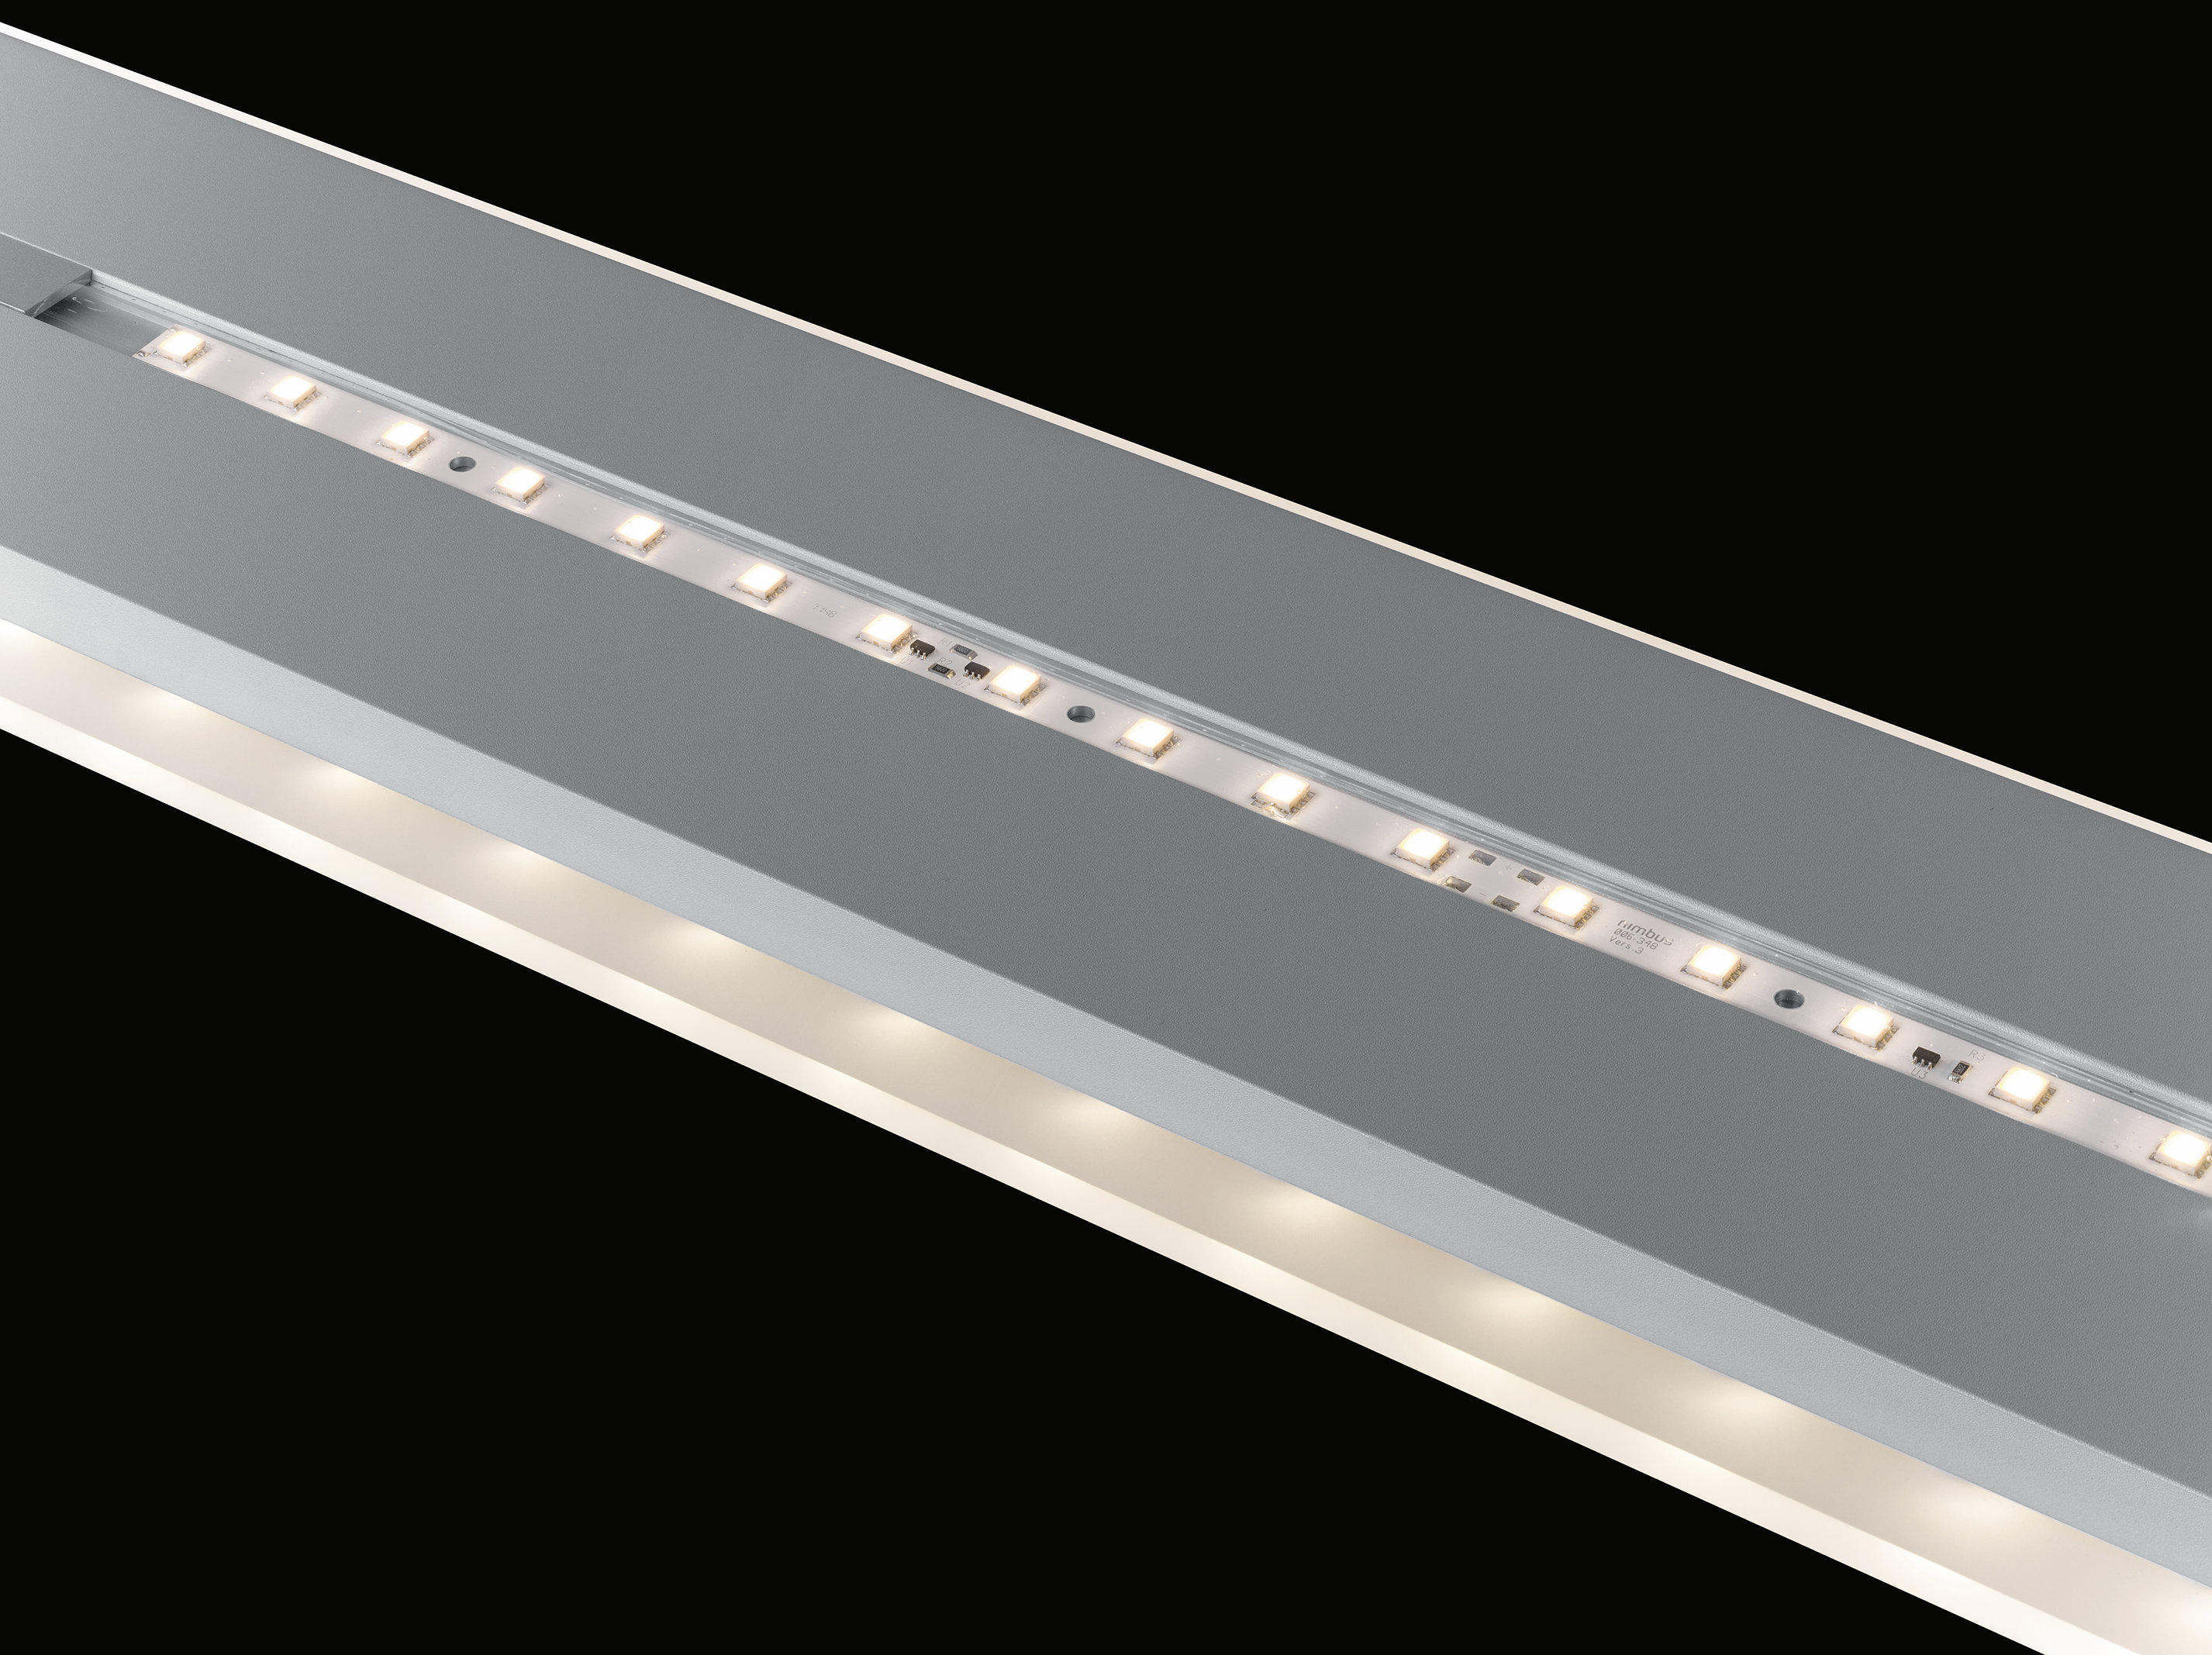 en l by pendant ockert lights power architonic from modul nimbus b group strip product frank